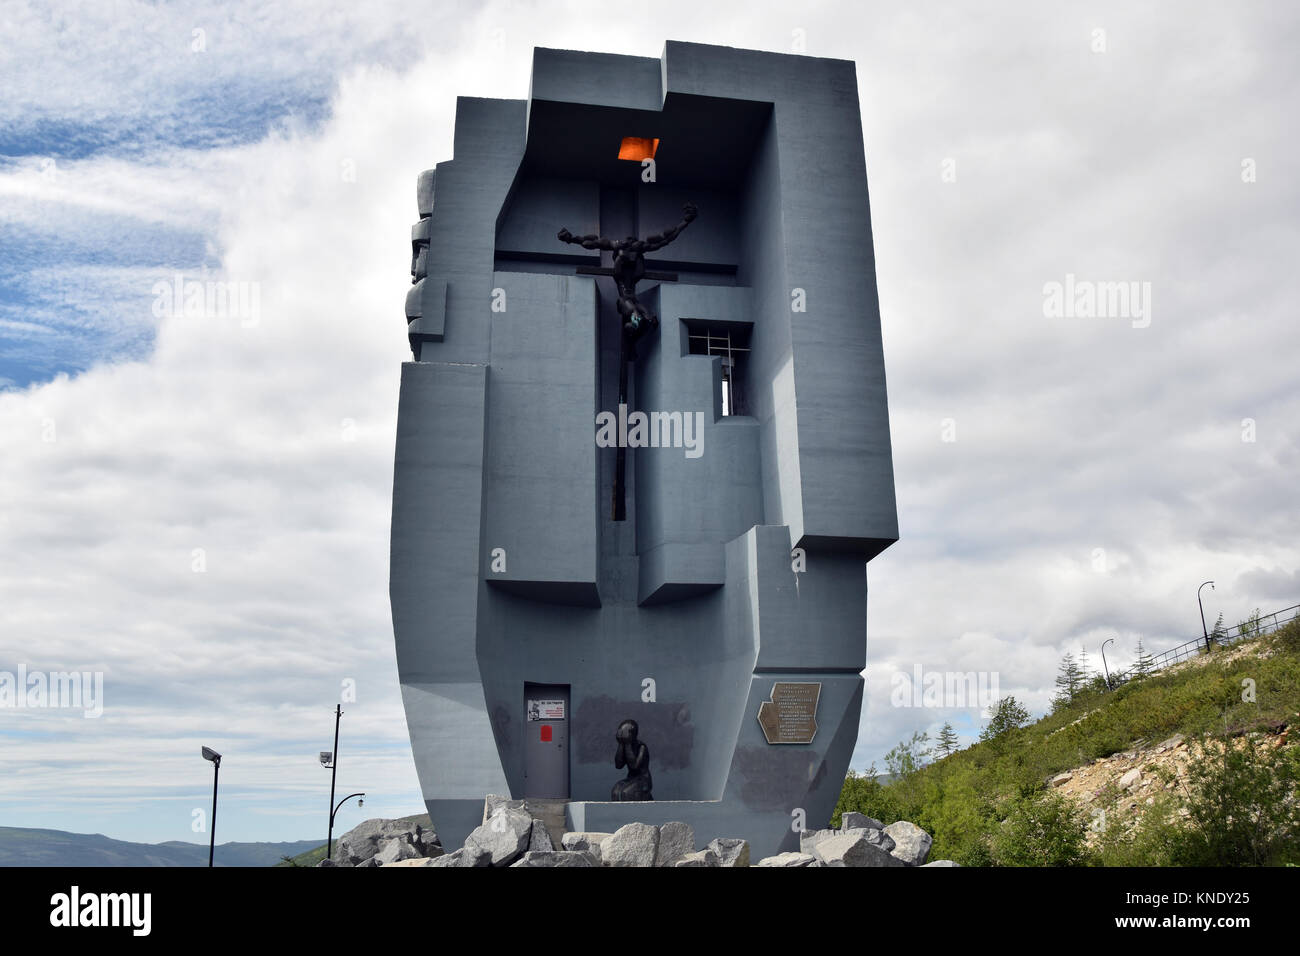 The Mask of Sorrow in Magadan, the capital city of Kolyma, which remembers the victims of the soviet repression. - Stock Image